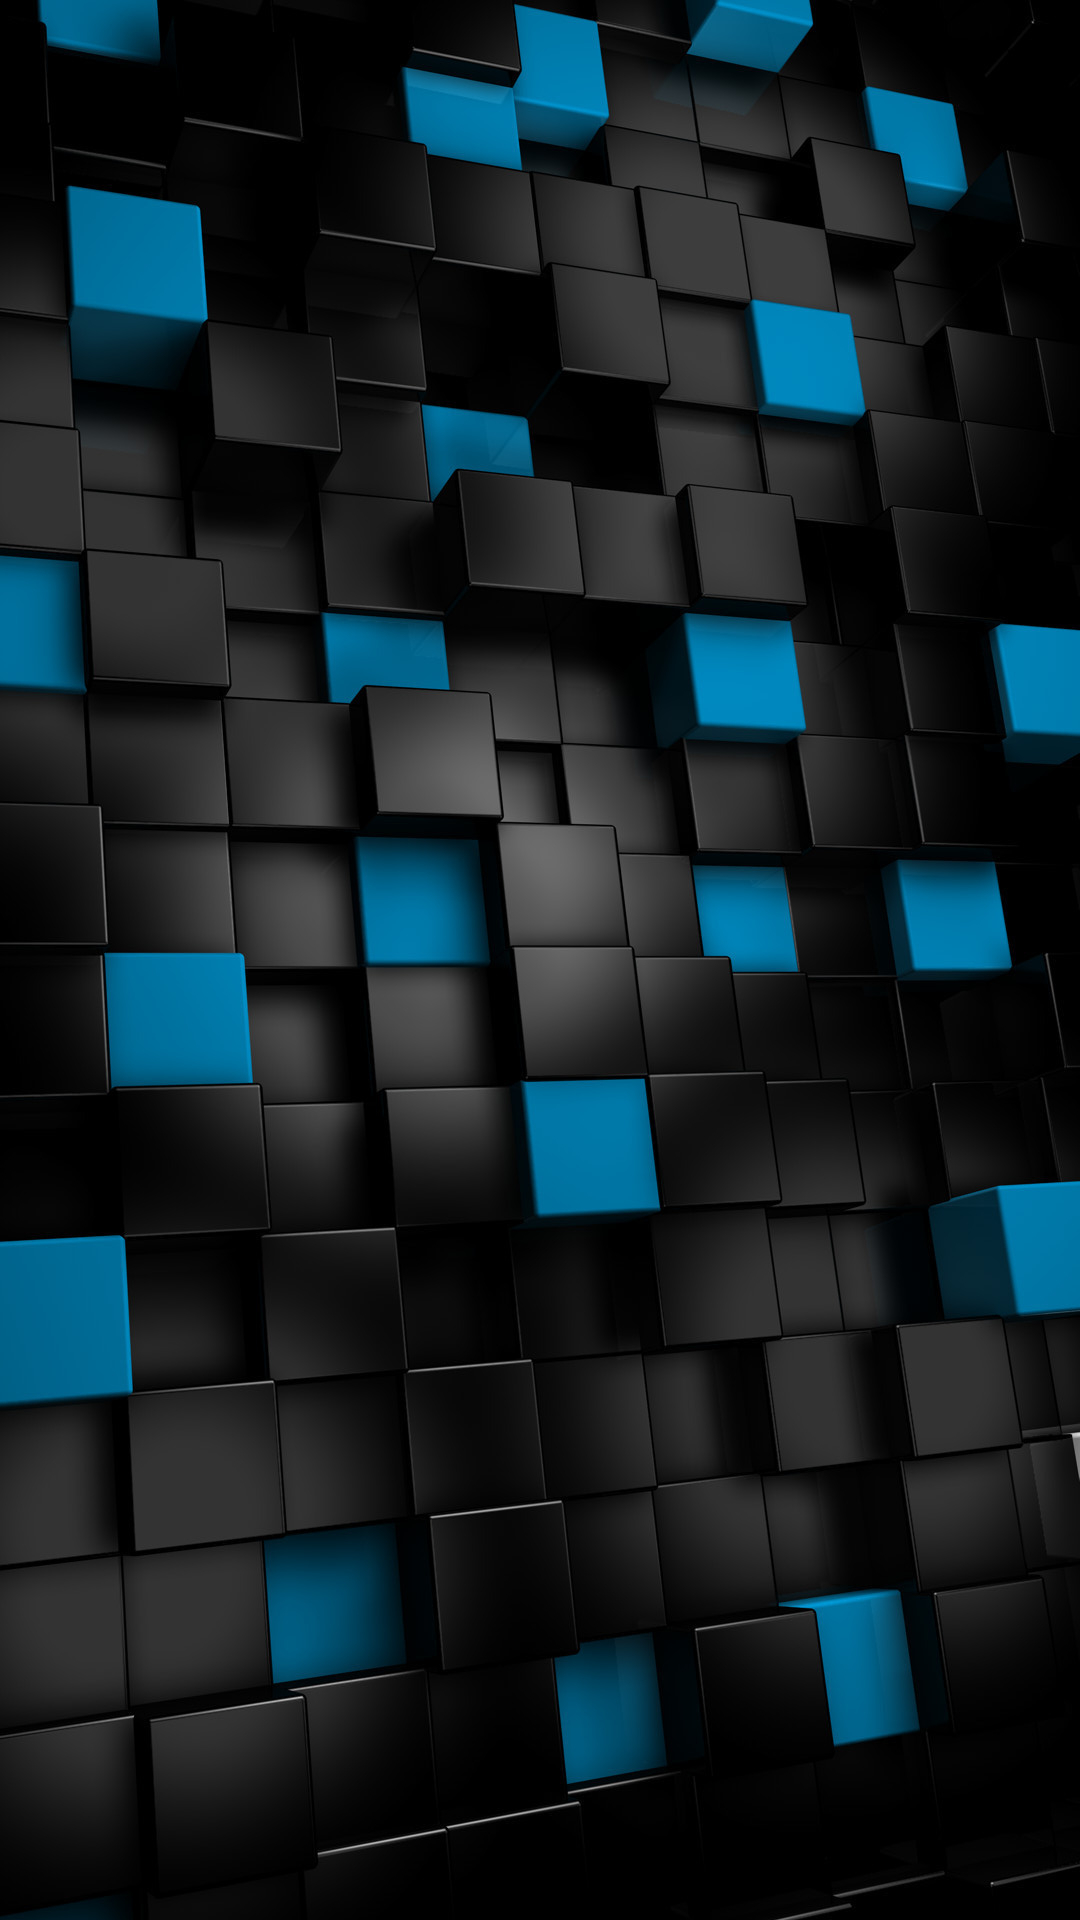 Abstract Black Cubes Best Htc One Wallpapers Free And Easy To